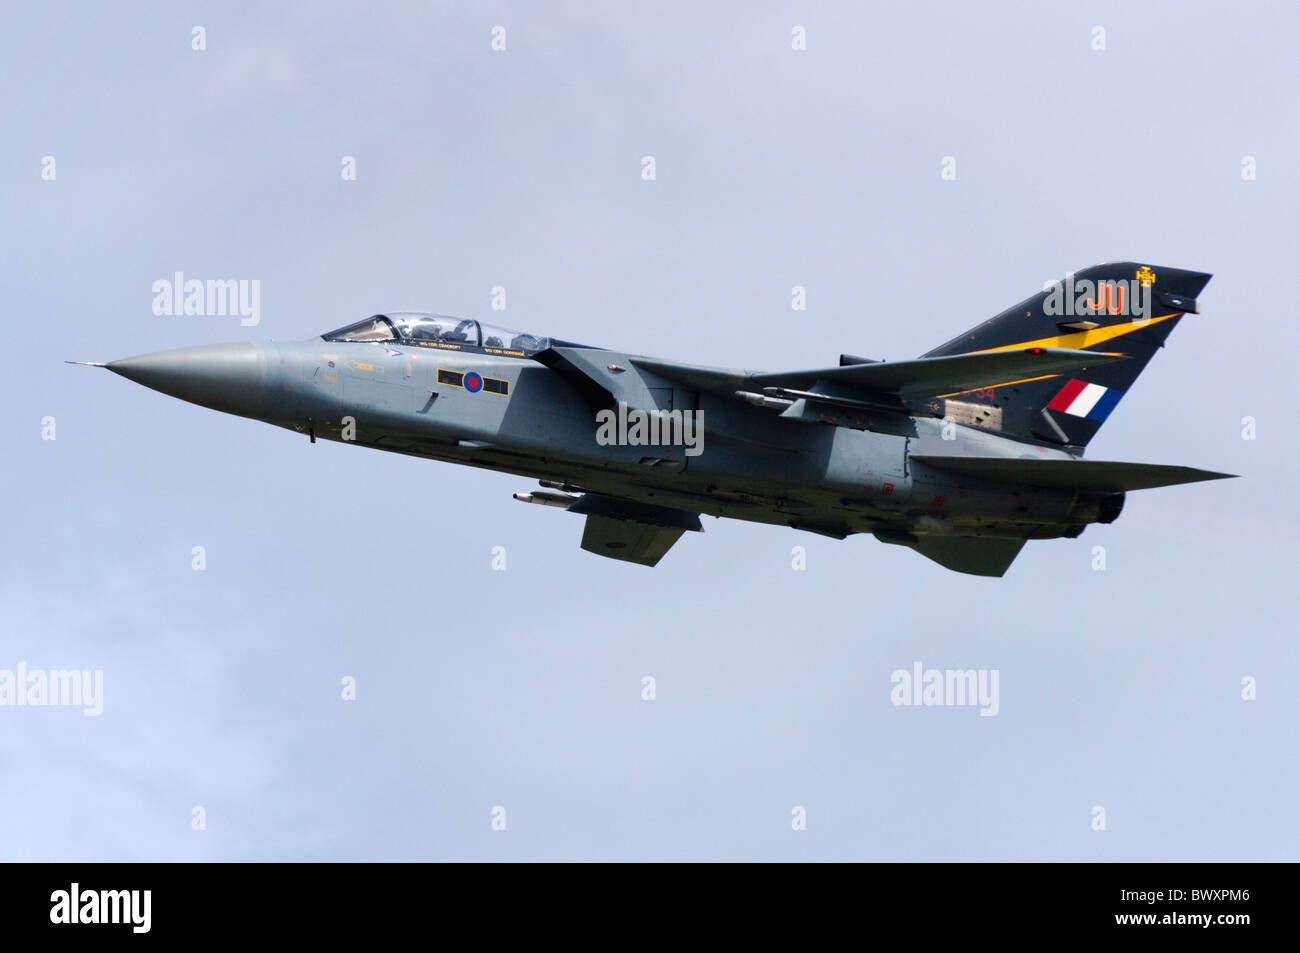 Tornado F3 jet fighter aircraft operated by the RAF departing RAF Fairford - Stock Image